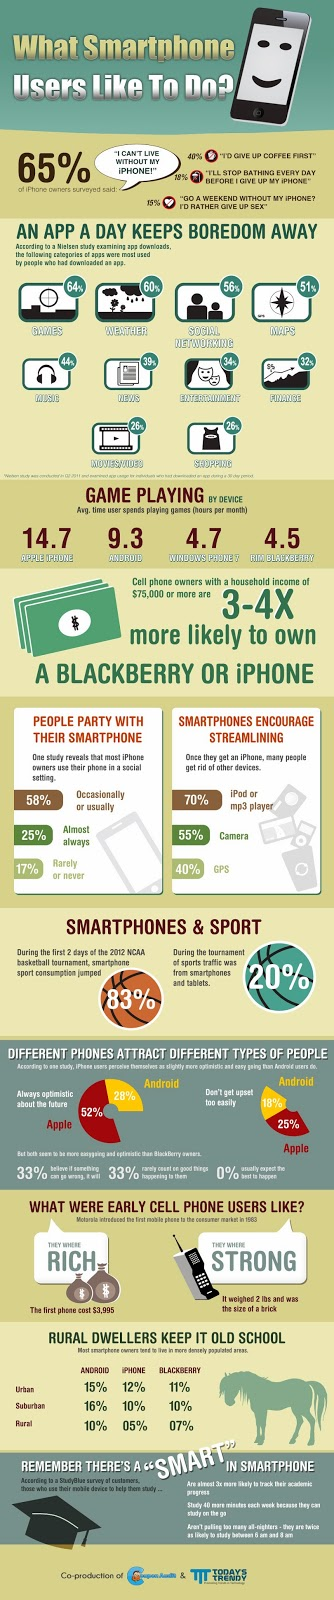 What Smartphone Users Like To Do?